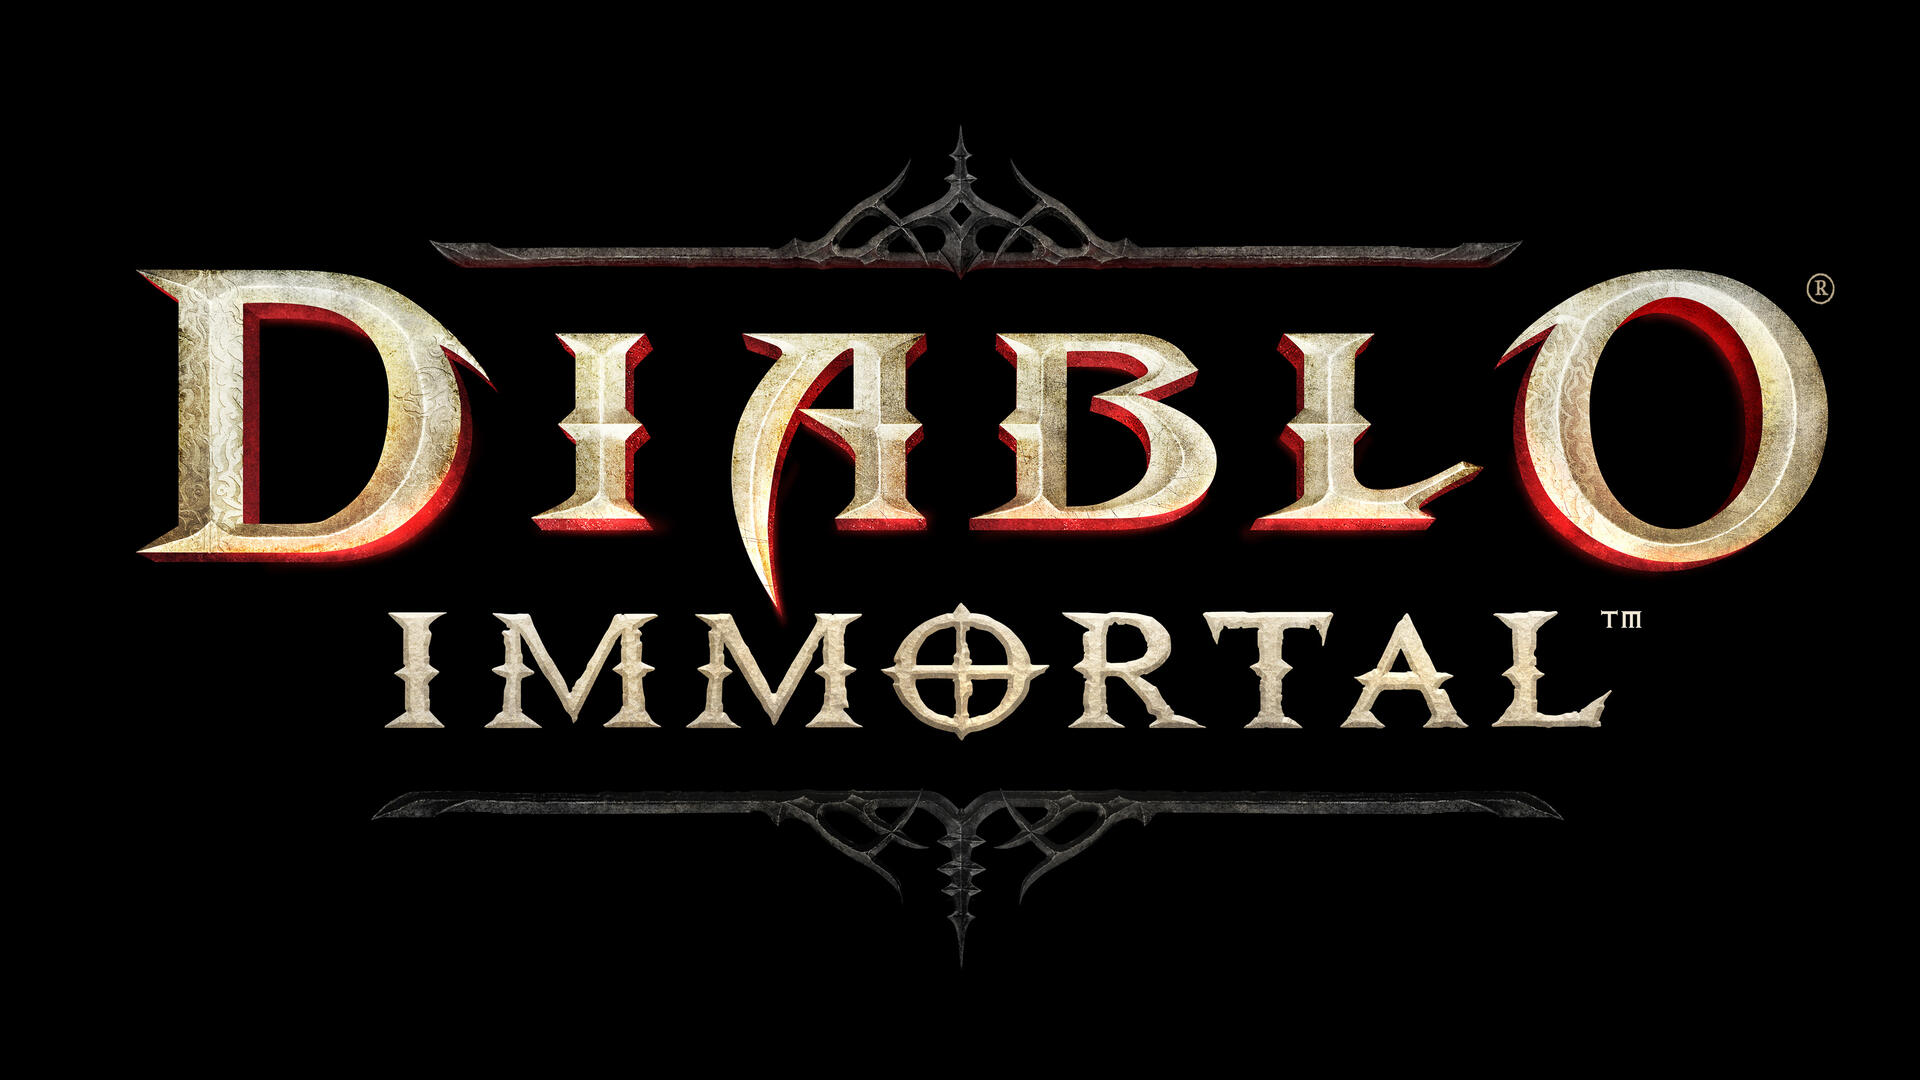 Diablo Immortal Release Date, Mobile, Trailer, Classes - Everything We Know